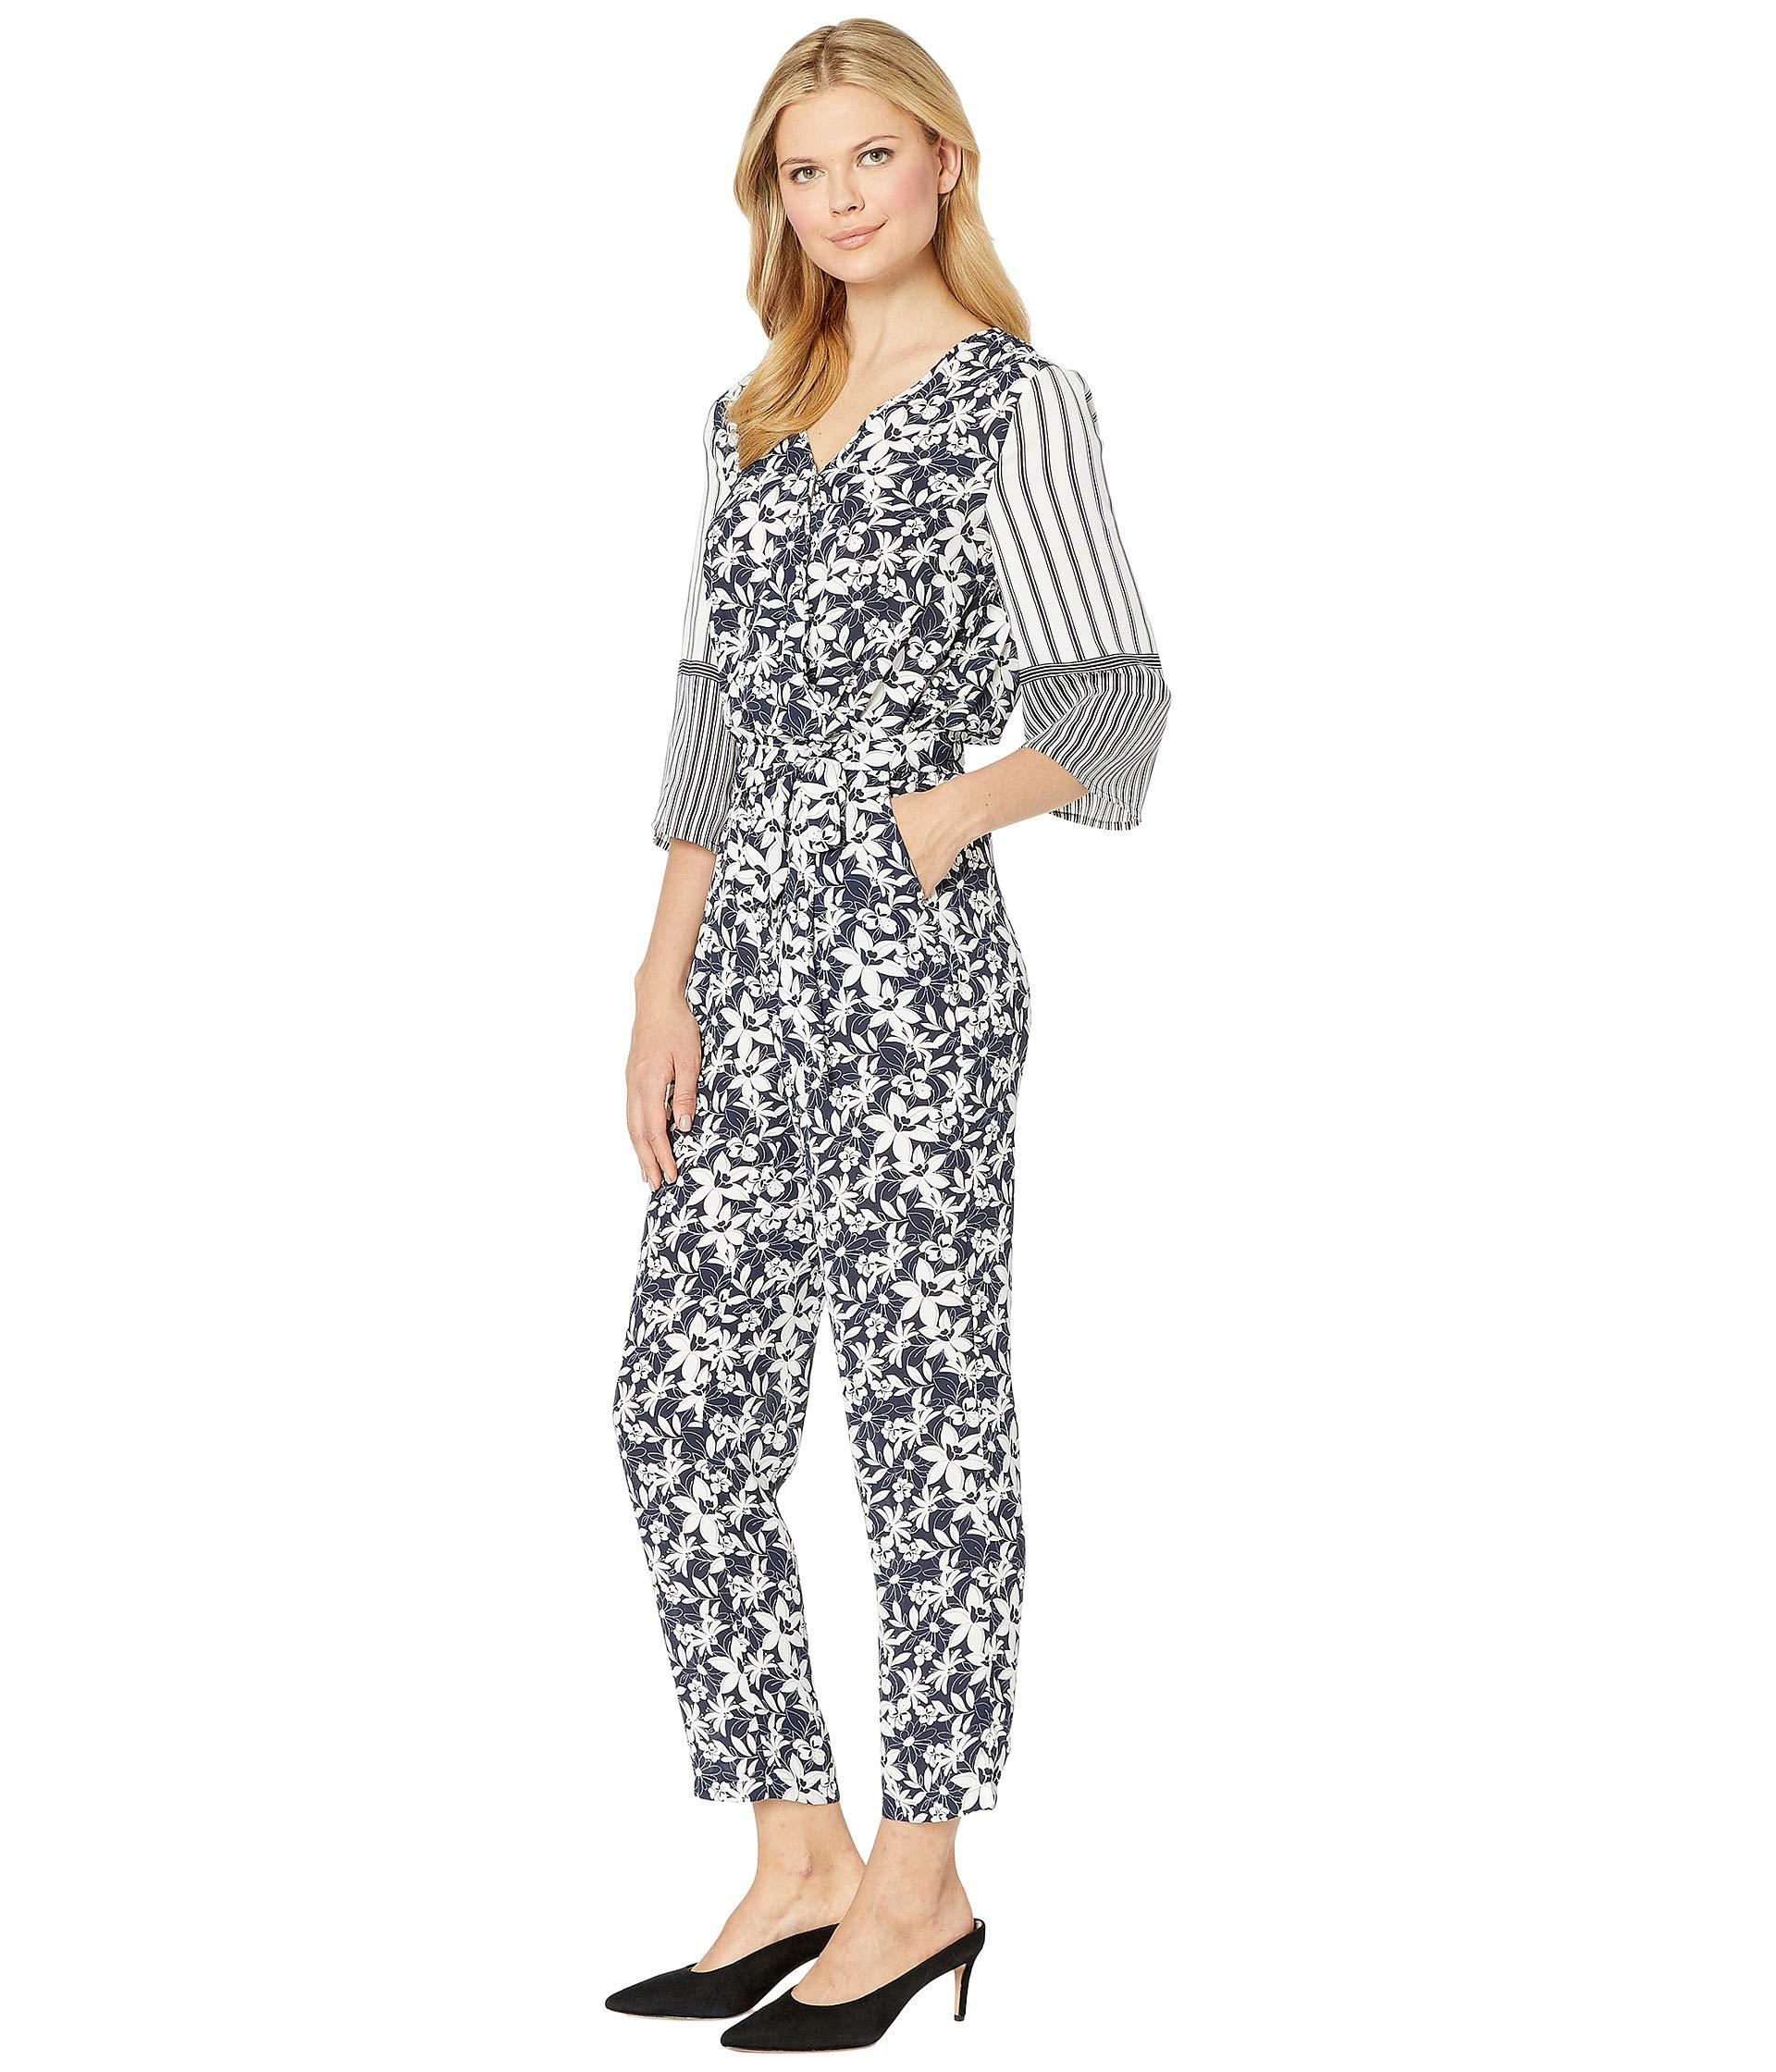 3095511f2a2 Lyst - Vince Camuto 3 4 Sleeve Floral Lace Mix Print Jumpsuit (classic  Navy) Women s Jumpsuit   Rompers One Piece in Blue